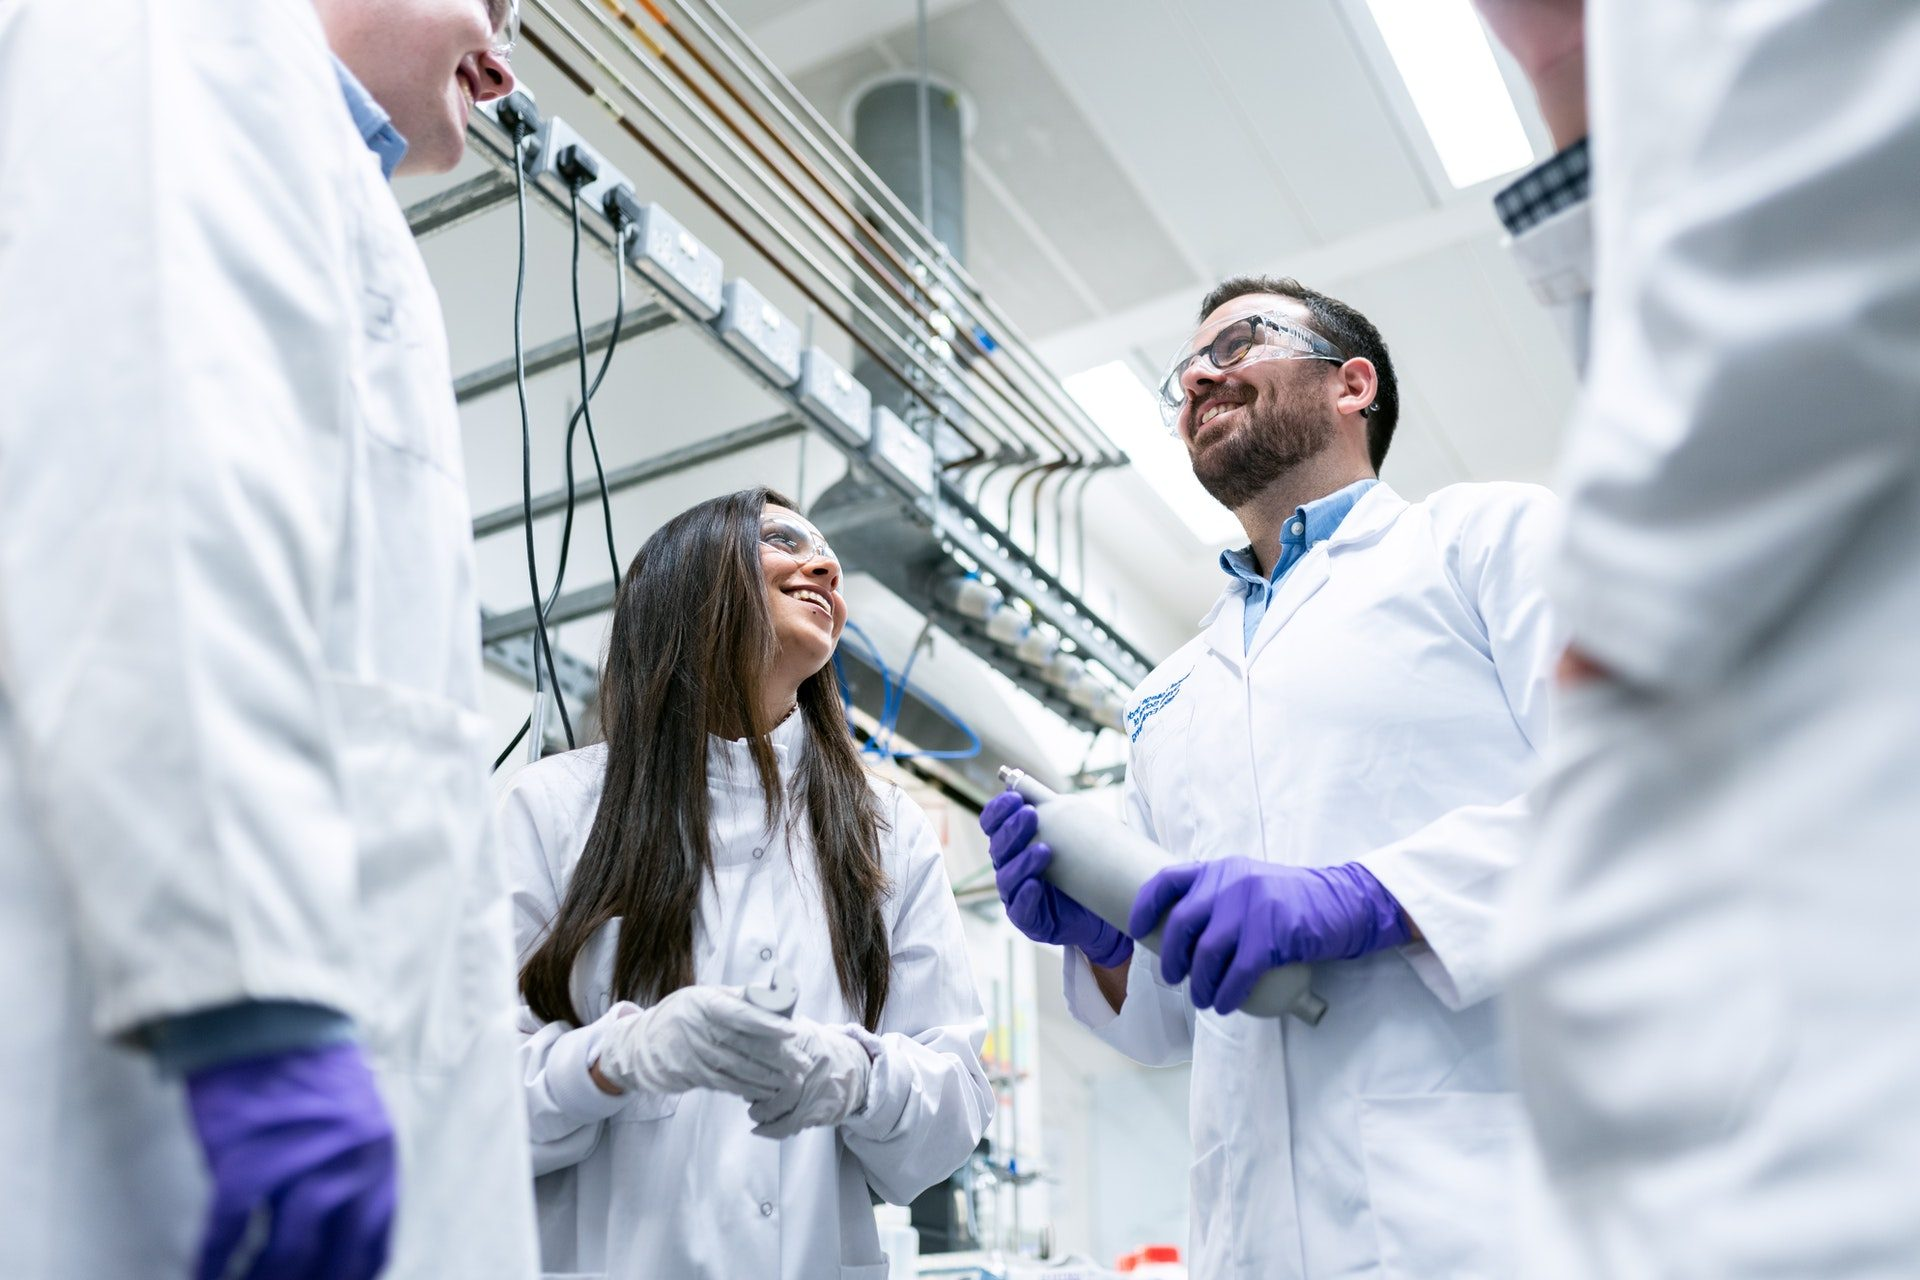 8 tips for students pursuing a science career